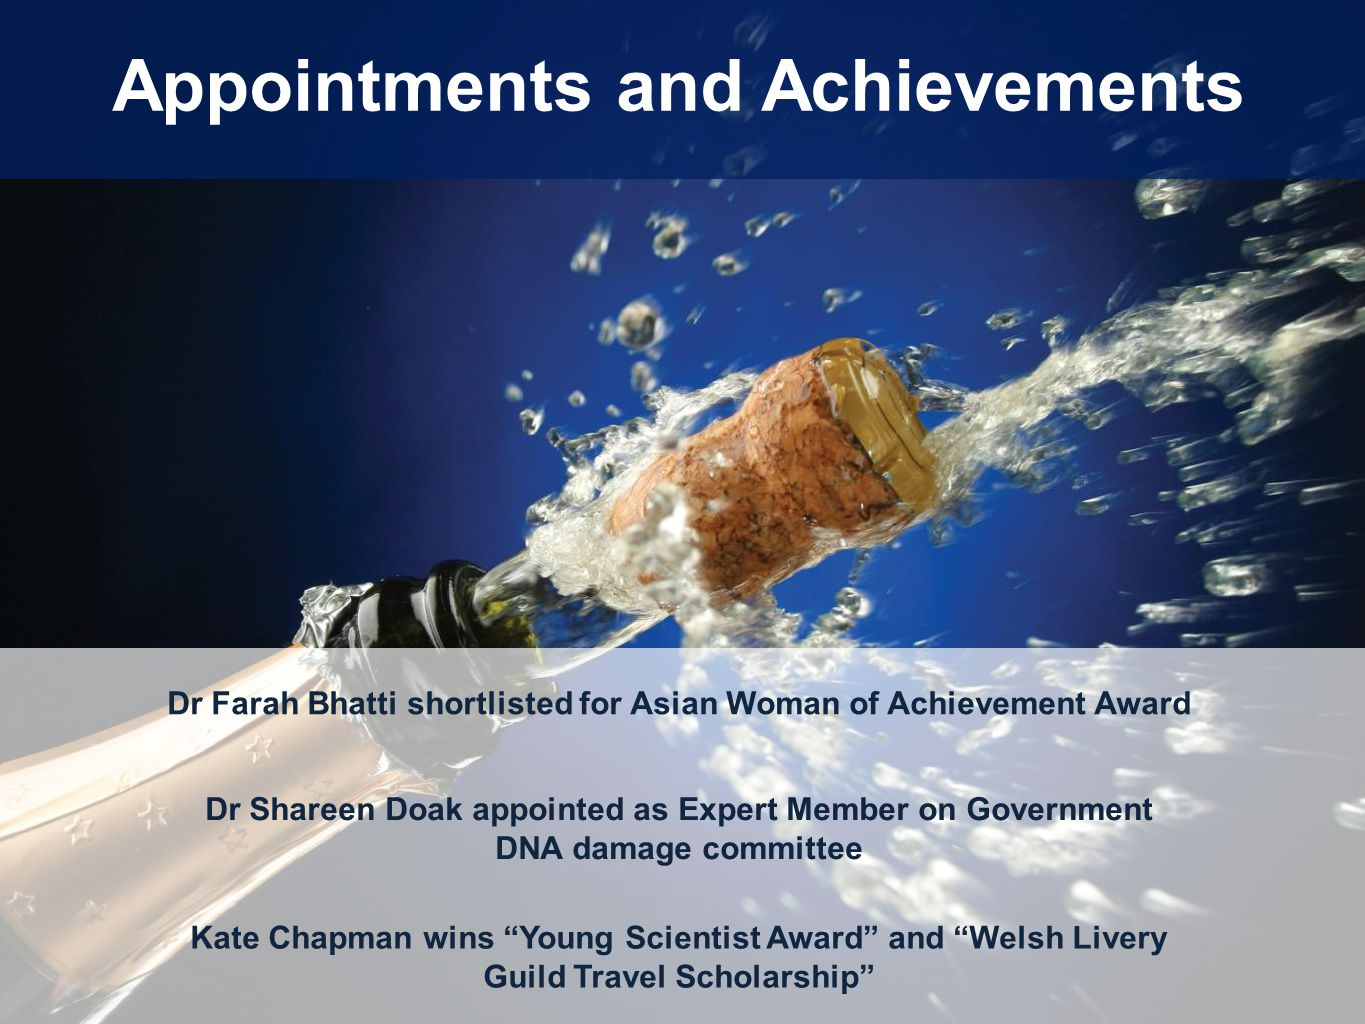 Appointments and Achievements Dr Farah Bhatti shortlisted for Asian Woman of Achievement Award Dr Shareen Doak appointed as Expert Member on Government DNA damage committee Kate Chapman wins Young Scientist Award and Welsh Livery Guild Travel Scholarship